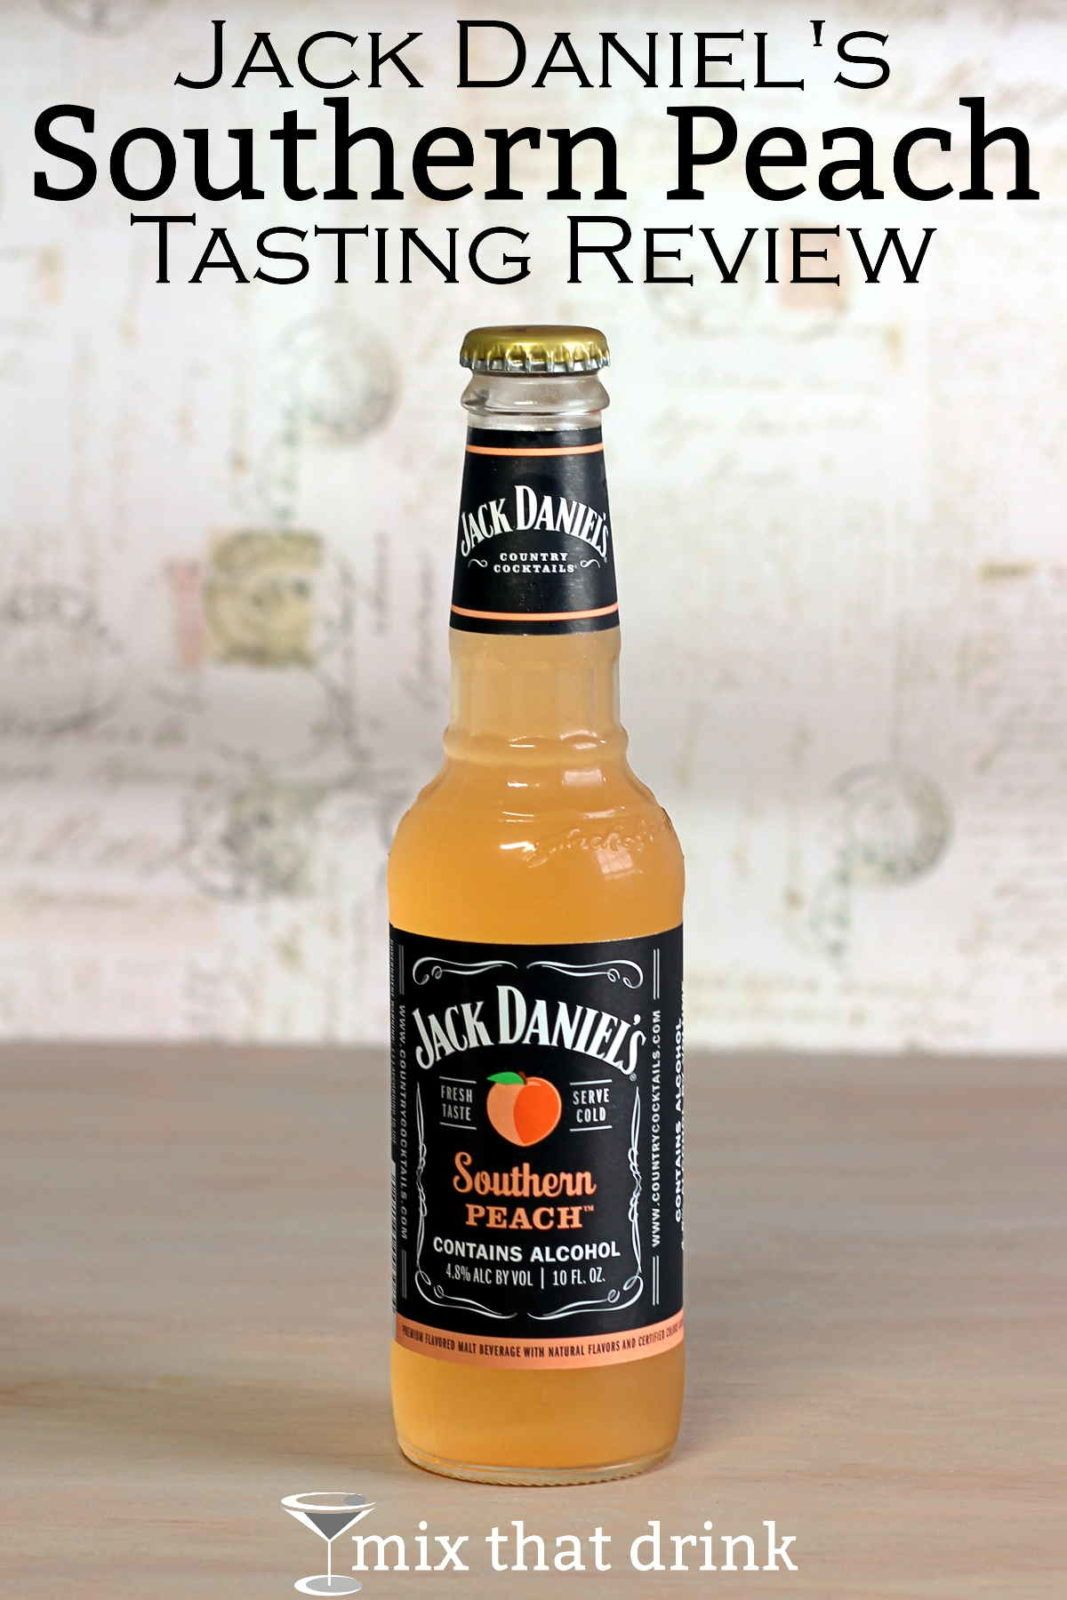 Jack Daniel's Southern Peach from the Country Cocktails line is a premium malt beverage featuring a wonderful peach flavor. It's lightly sweet with a tart edge that makes it surprisingly refreshing.